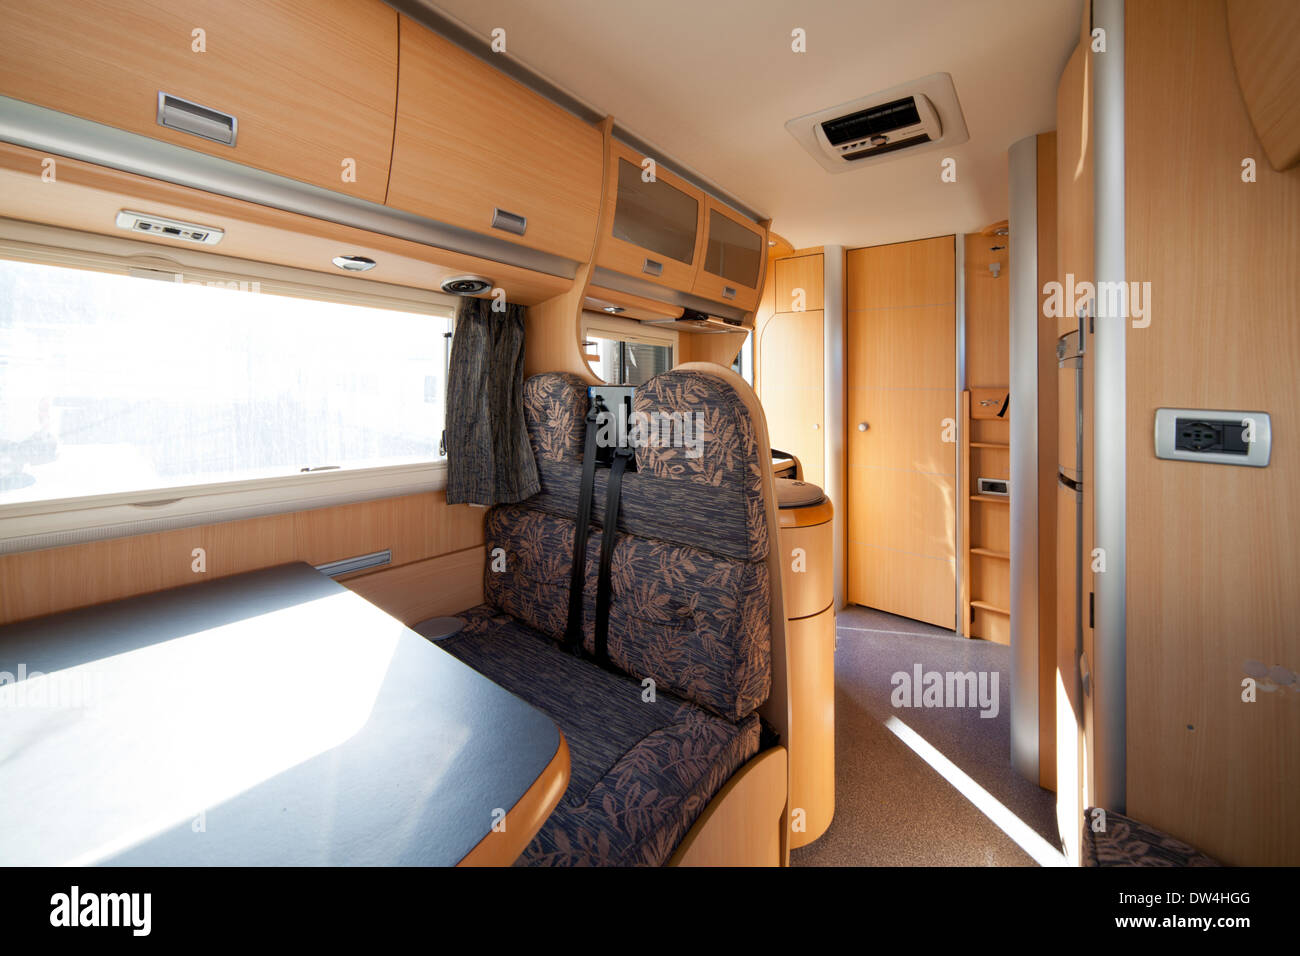 Inside of a Camper van vehicle with dinette, kitchen and cabinets ...